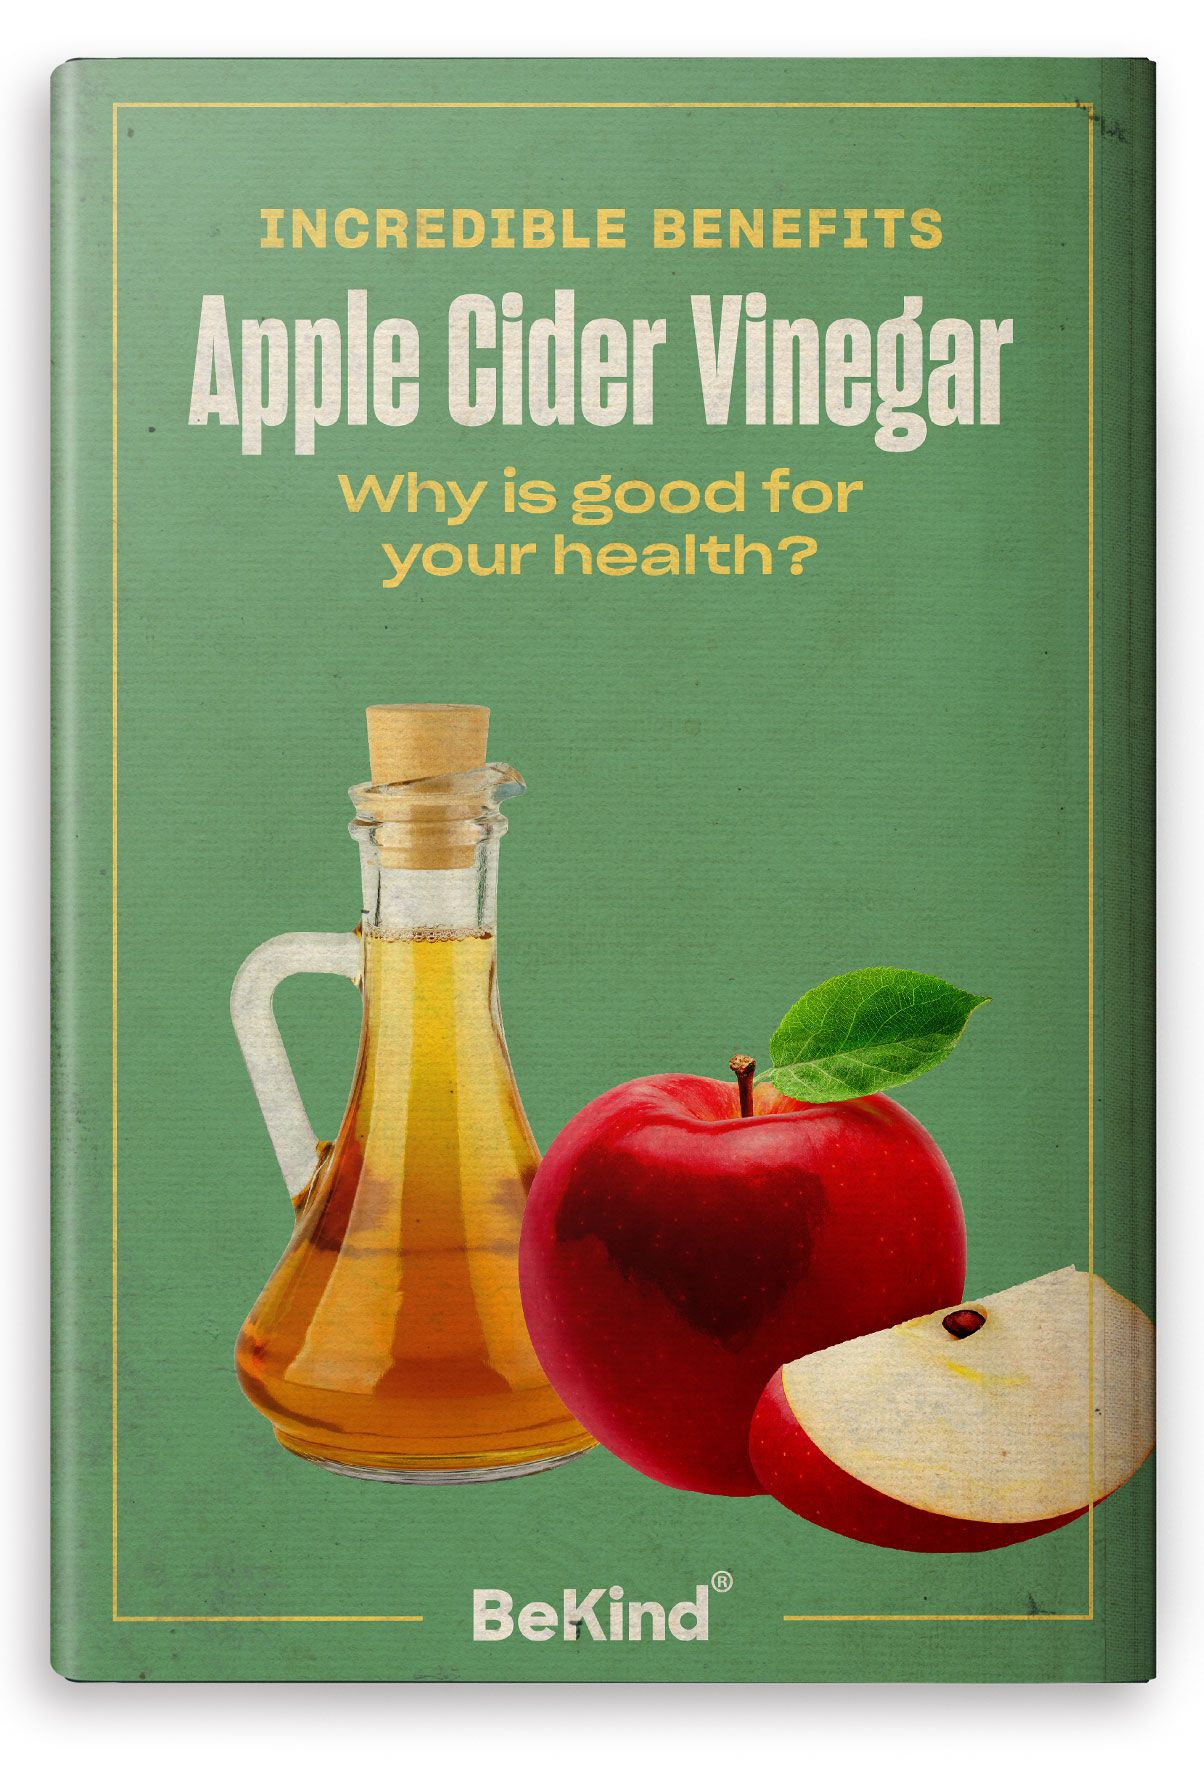 Free E– Book: Incredible benefits of Apple Cider Vinegar. Why is it good for your health?